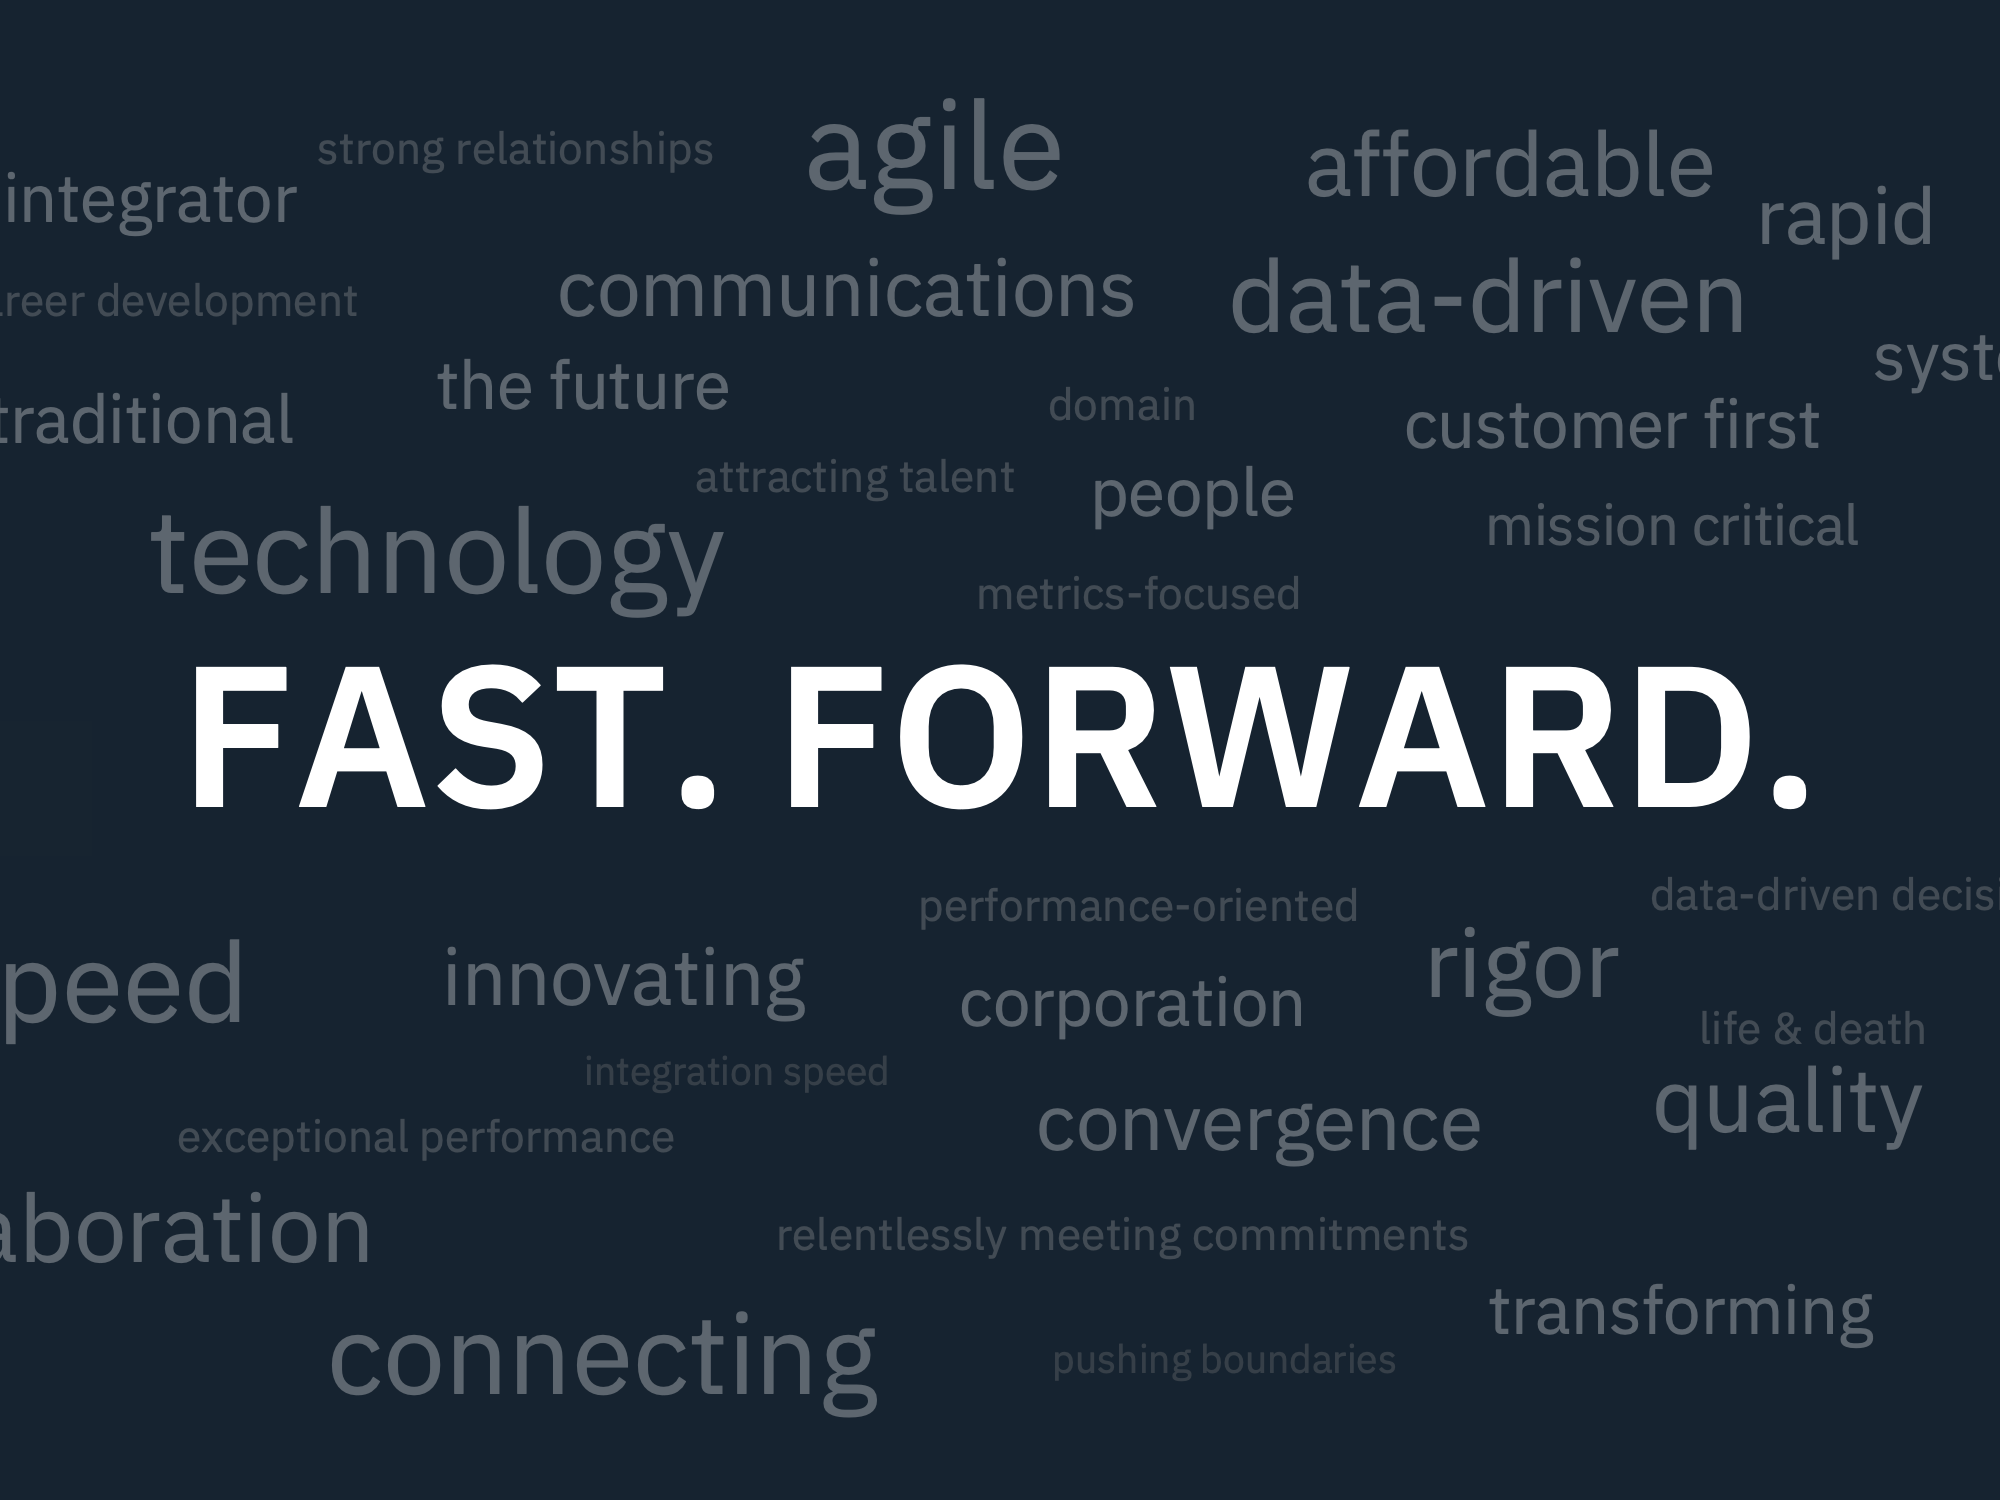 Word cloud that led to the L3Harris tagline, 'Fast. Forward.'